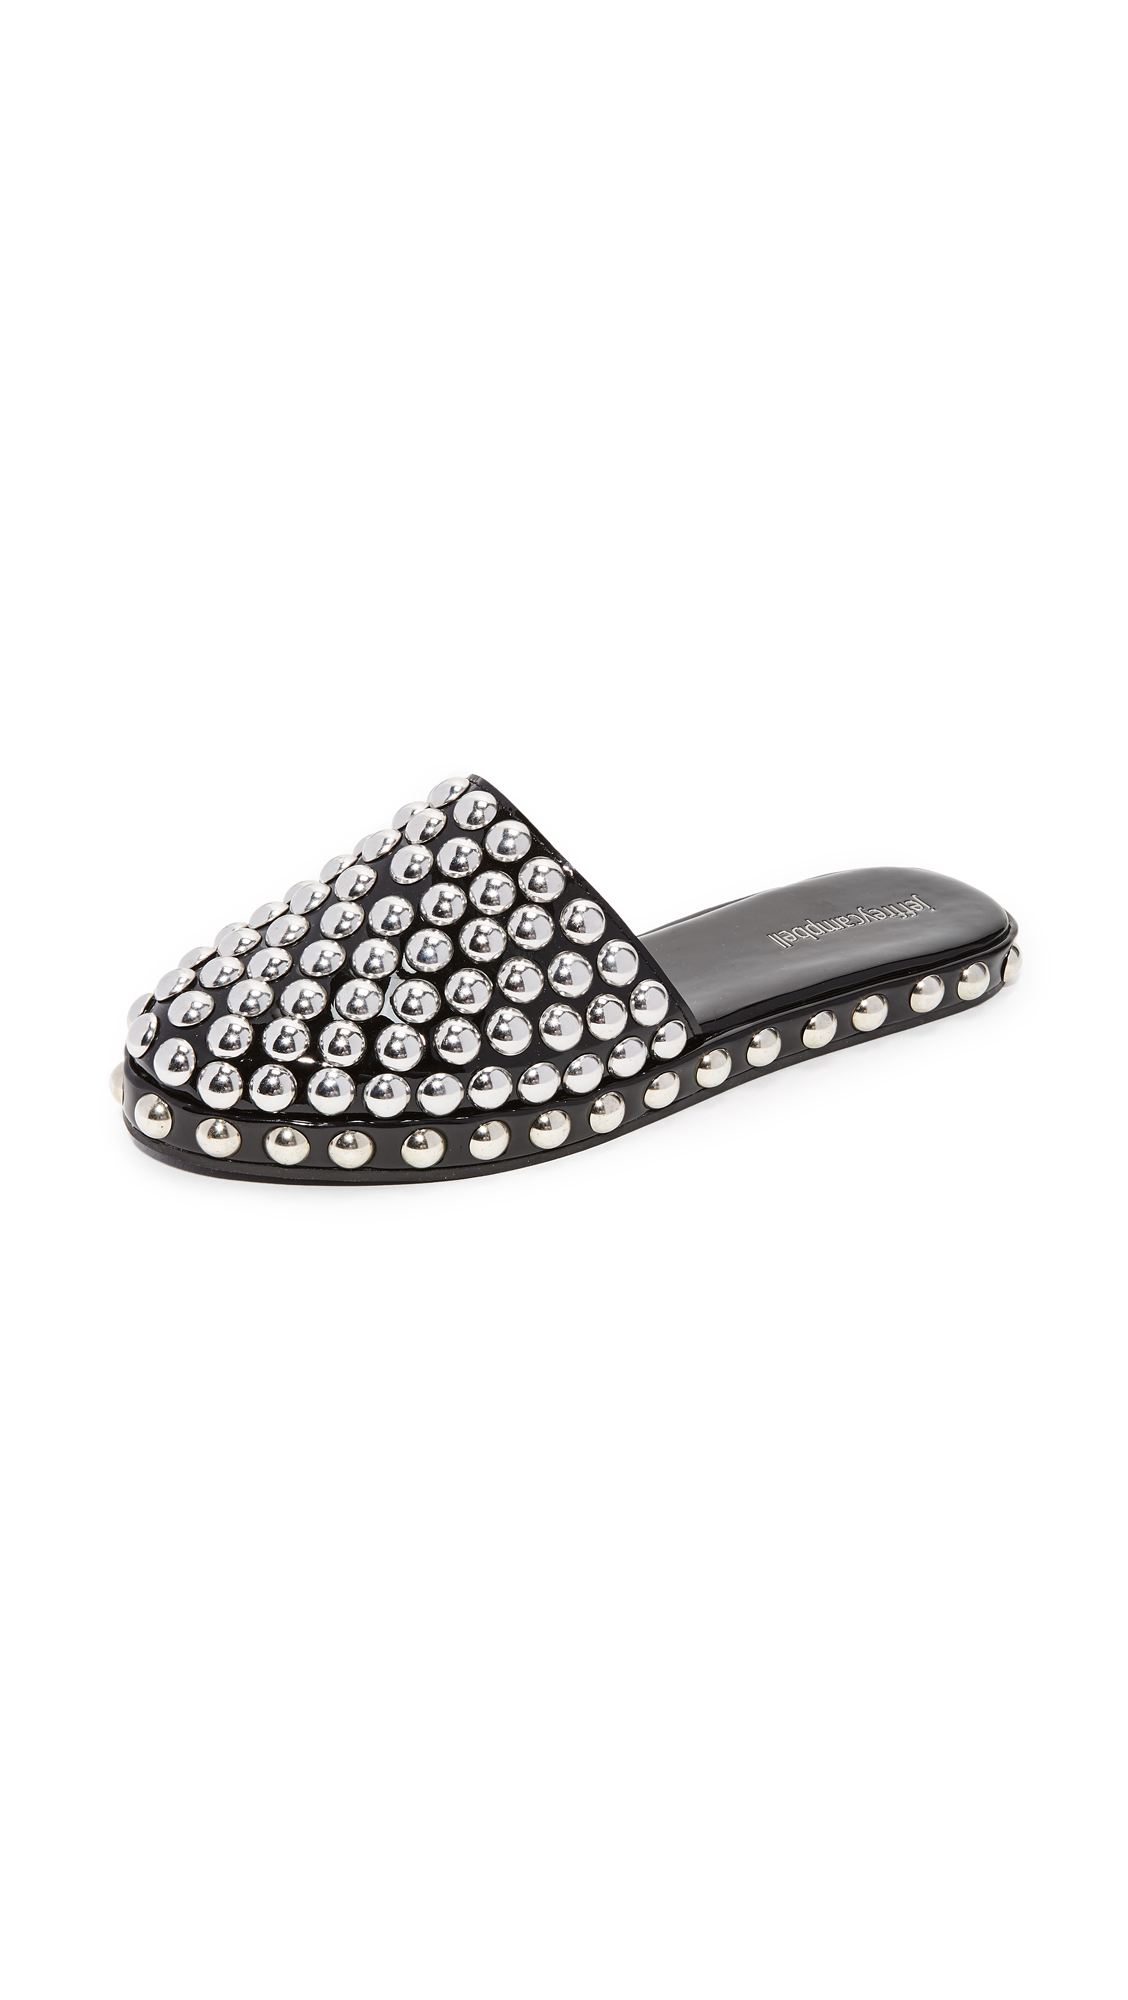 Jeffrey Campbell Rosebay Studded Slip On Mules - Black/Silver